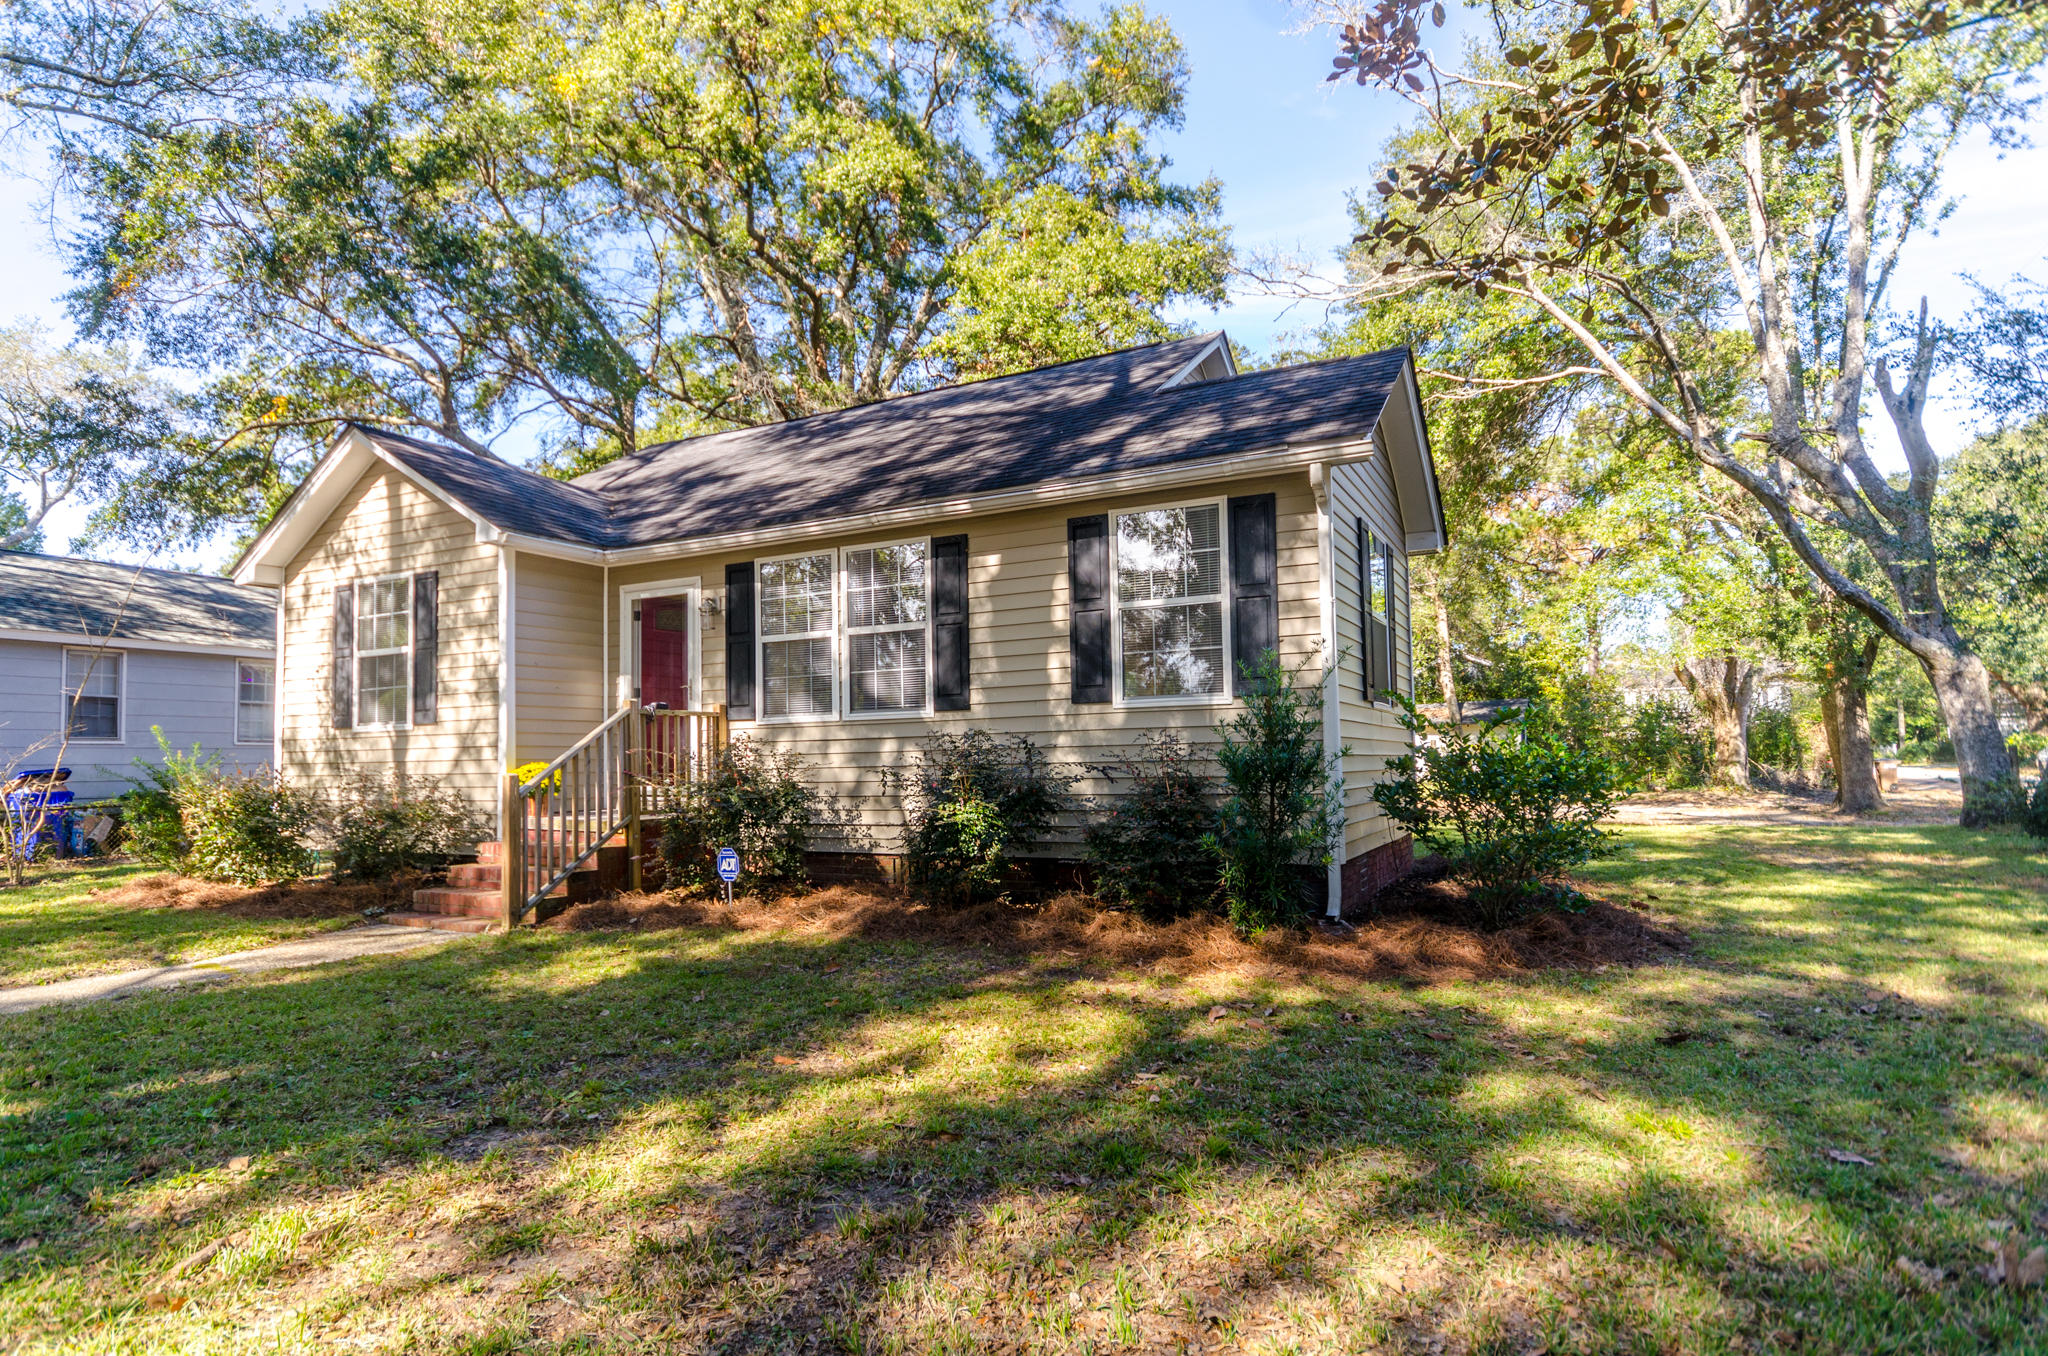 Home for sale 2104 Medway Road, Riverland Terrace, James Island, SC